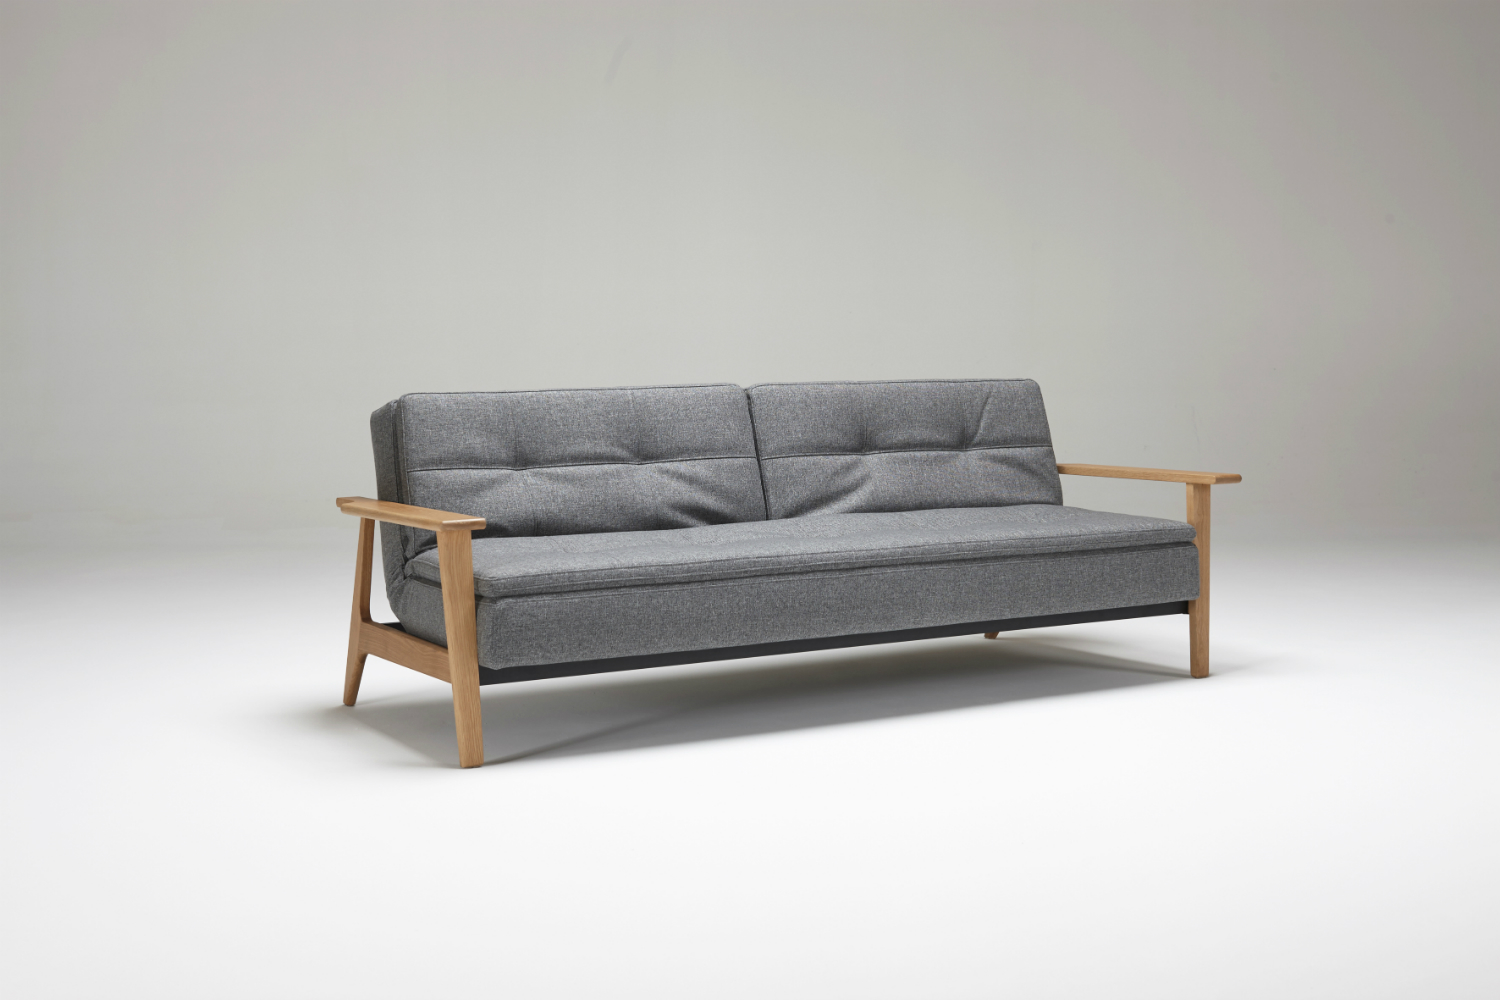 ISTYLE_2015_-_DUBLEXO-SOFA_BED_WITH_FREJ_ARMRESTS_LACQURED_OAK_-_SOFA-POSITION-edit